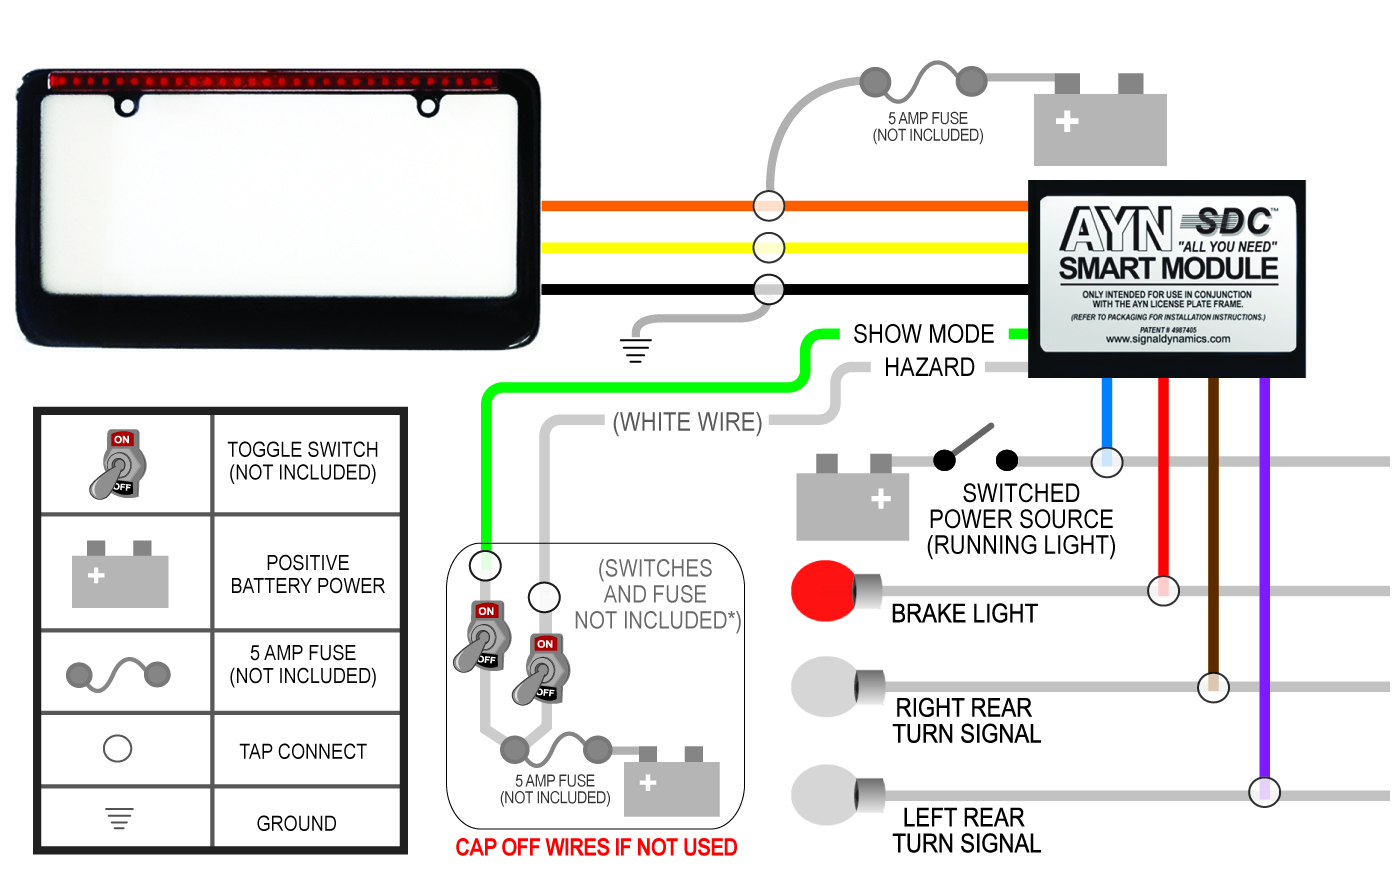 black auto wiring diagram?t=1399476781 black ayn automotive license plate frame & smart module combo Basic Turn Signal Wiring Diagram at virtualis.co